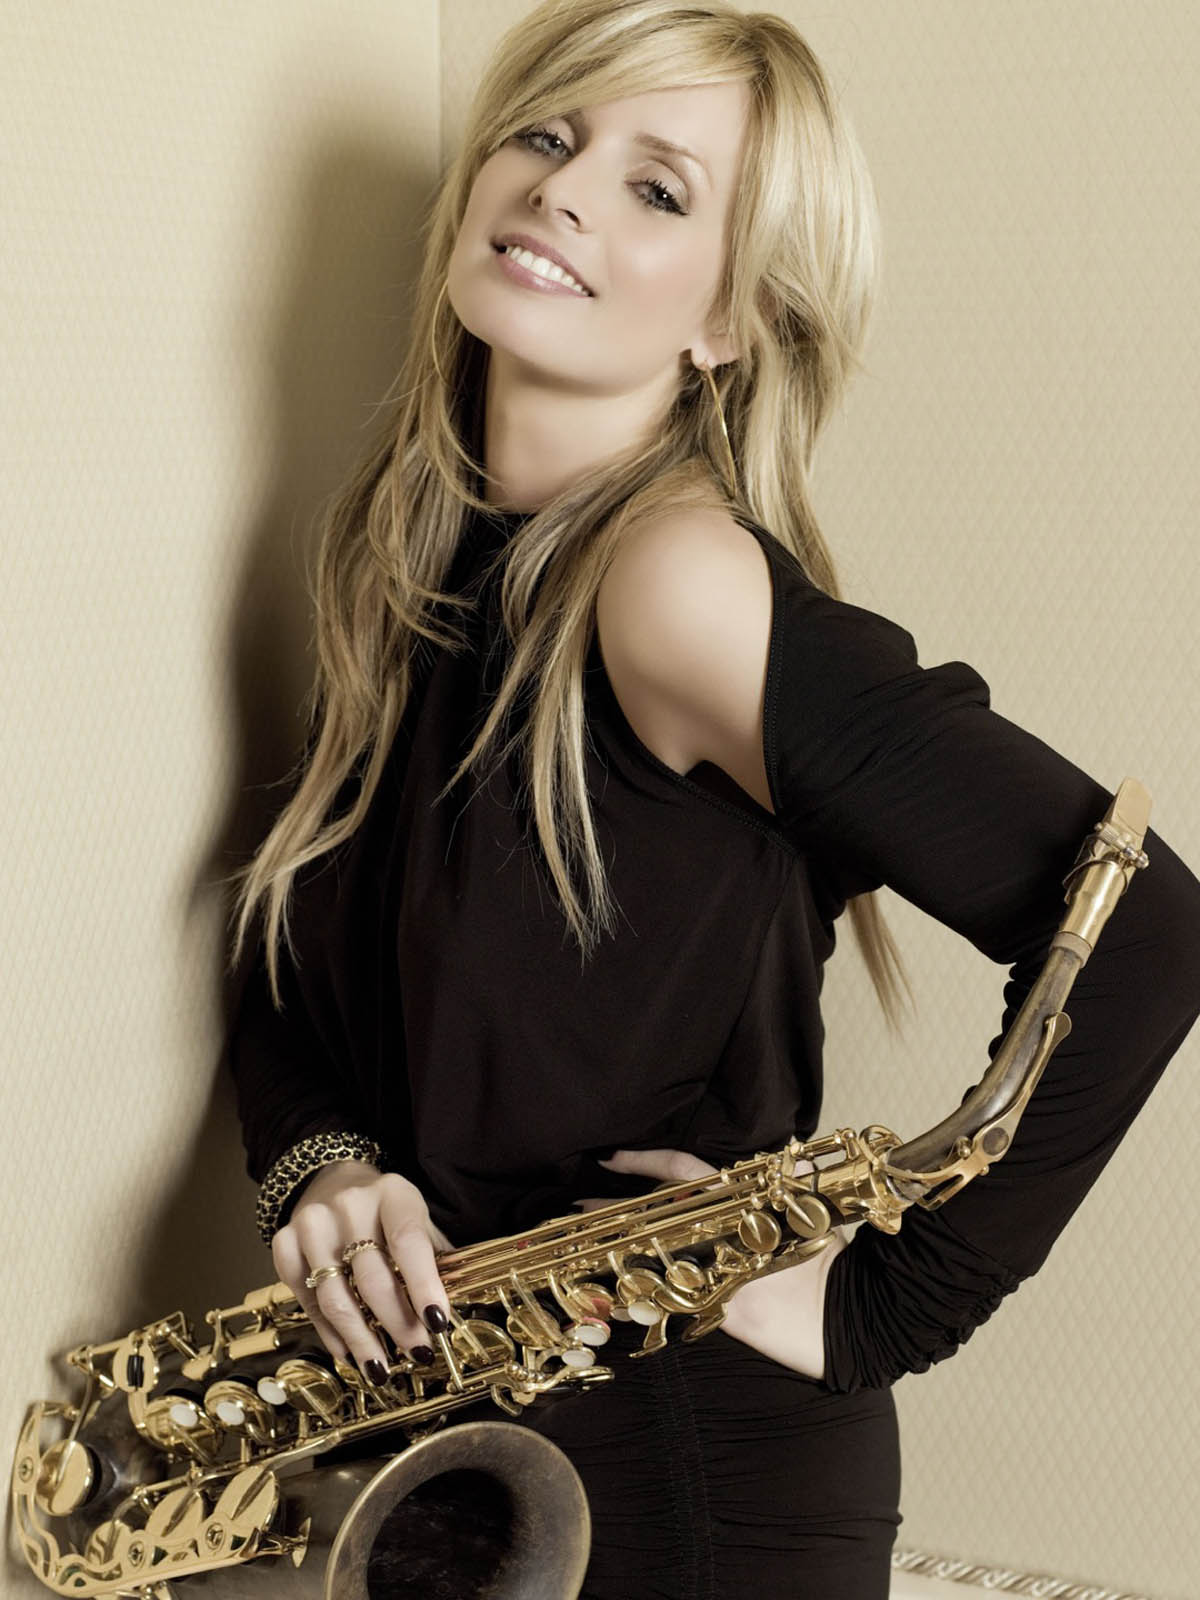 Candy Dulfer Naughty Photos Cutewallpapers